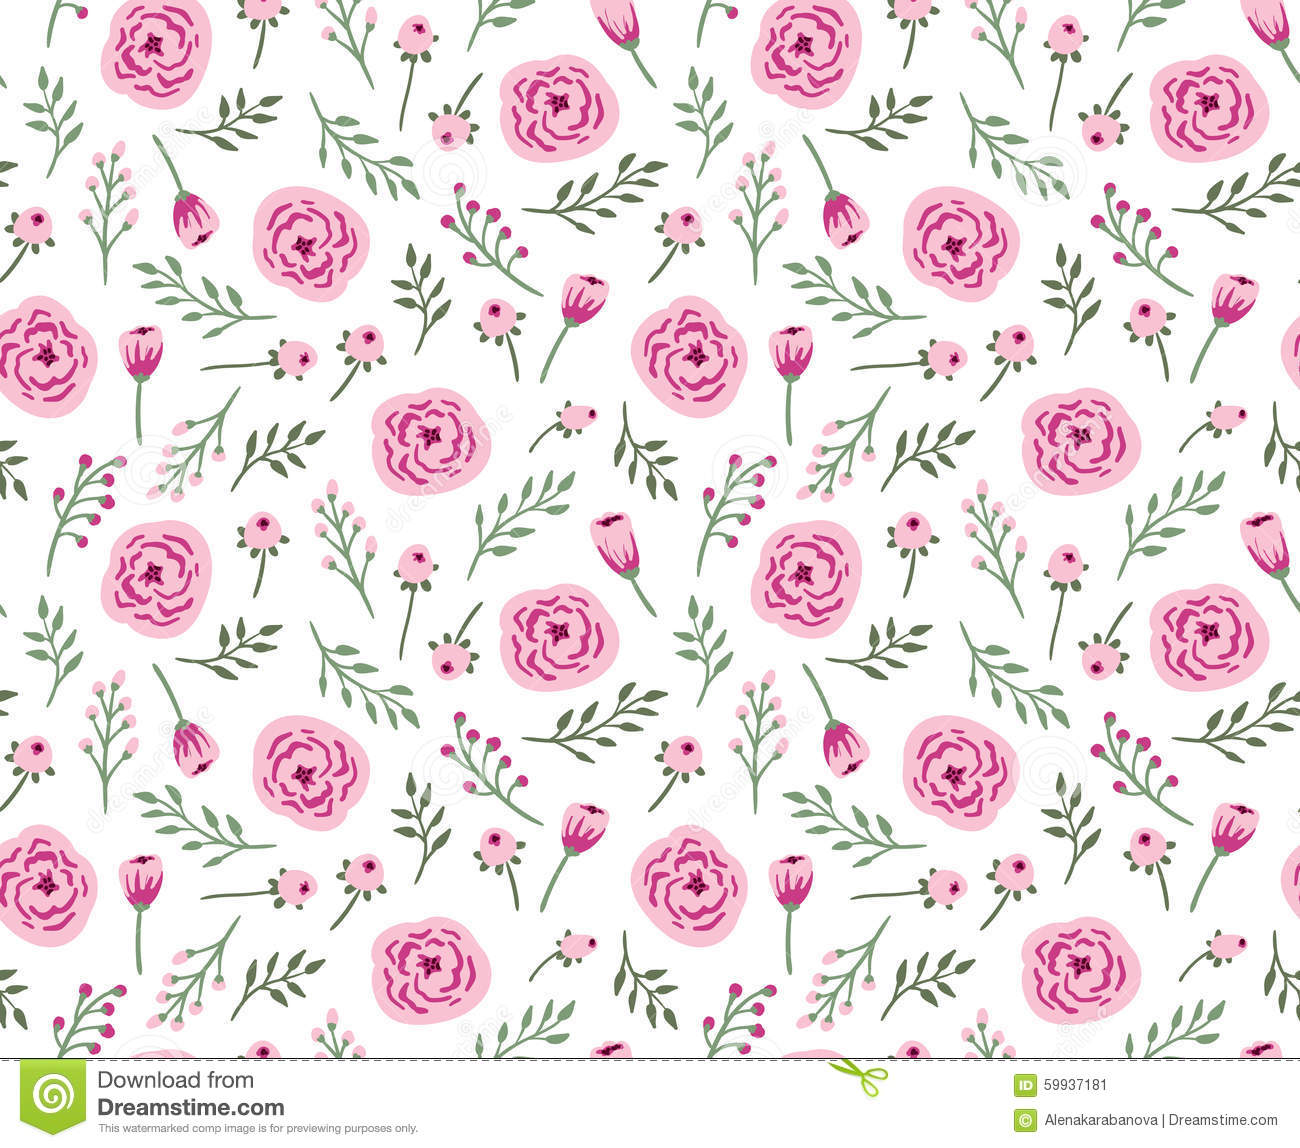 Vintage seamless background with field flowers and herbs.